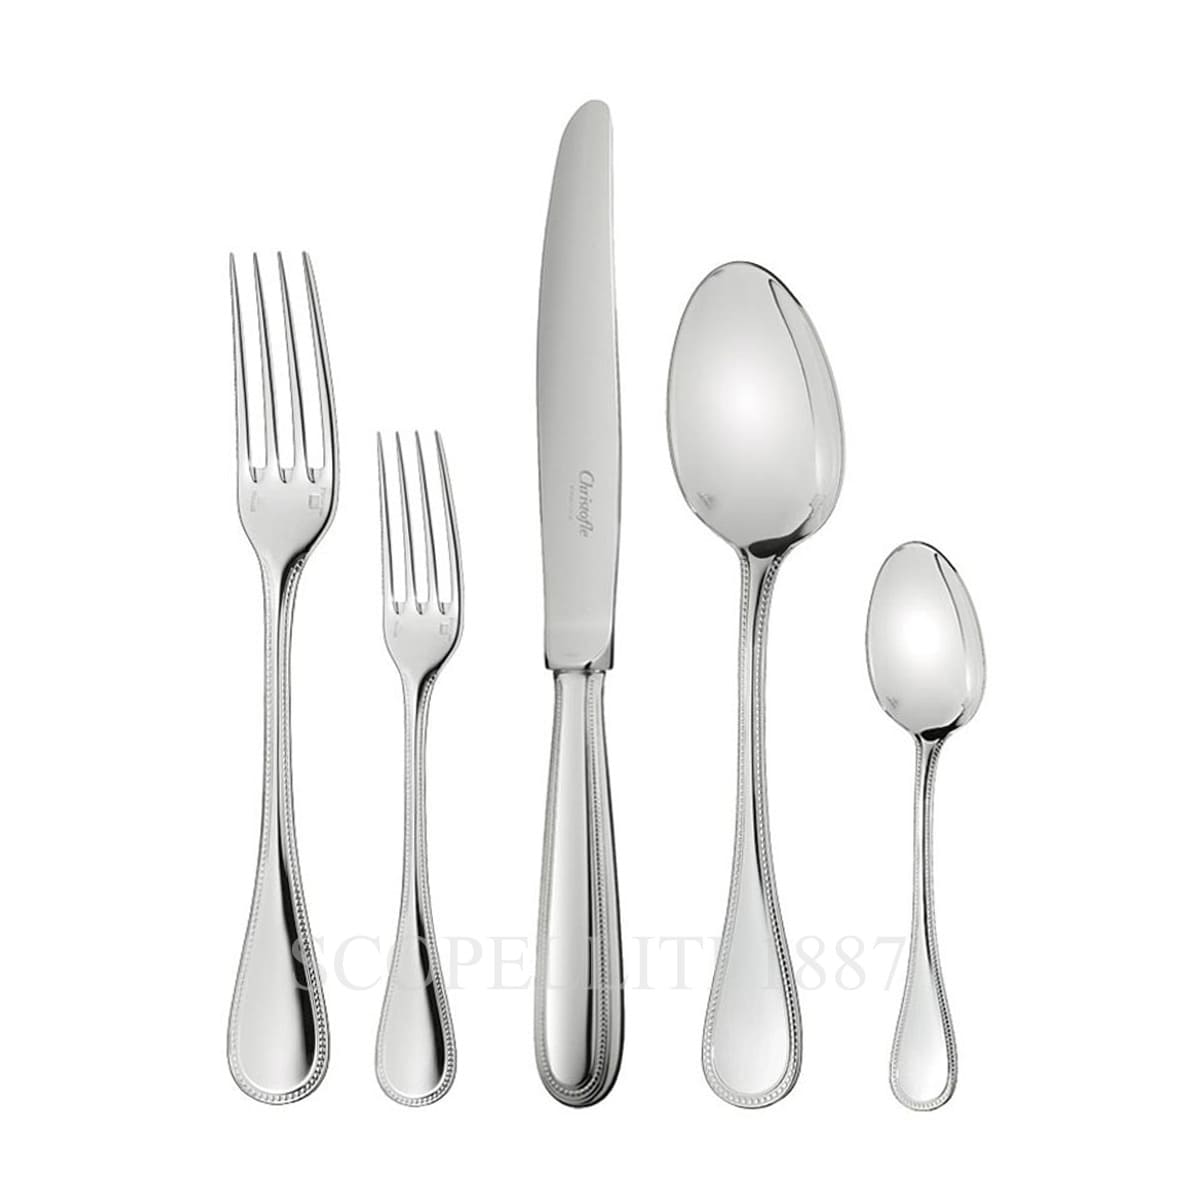 christofle flatware perles